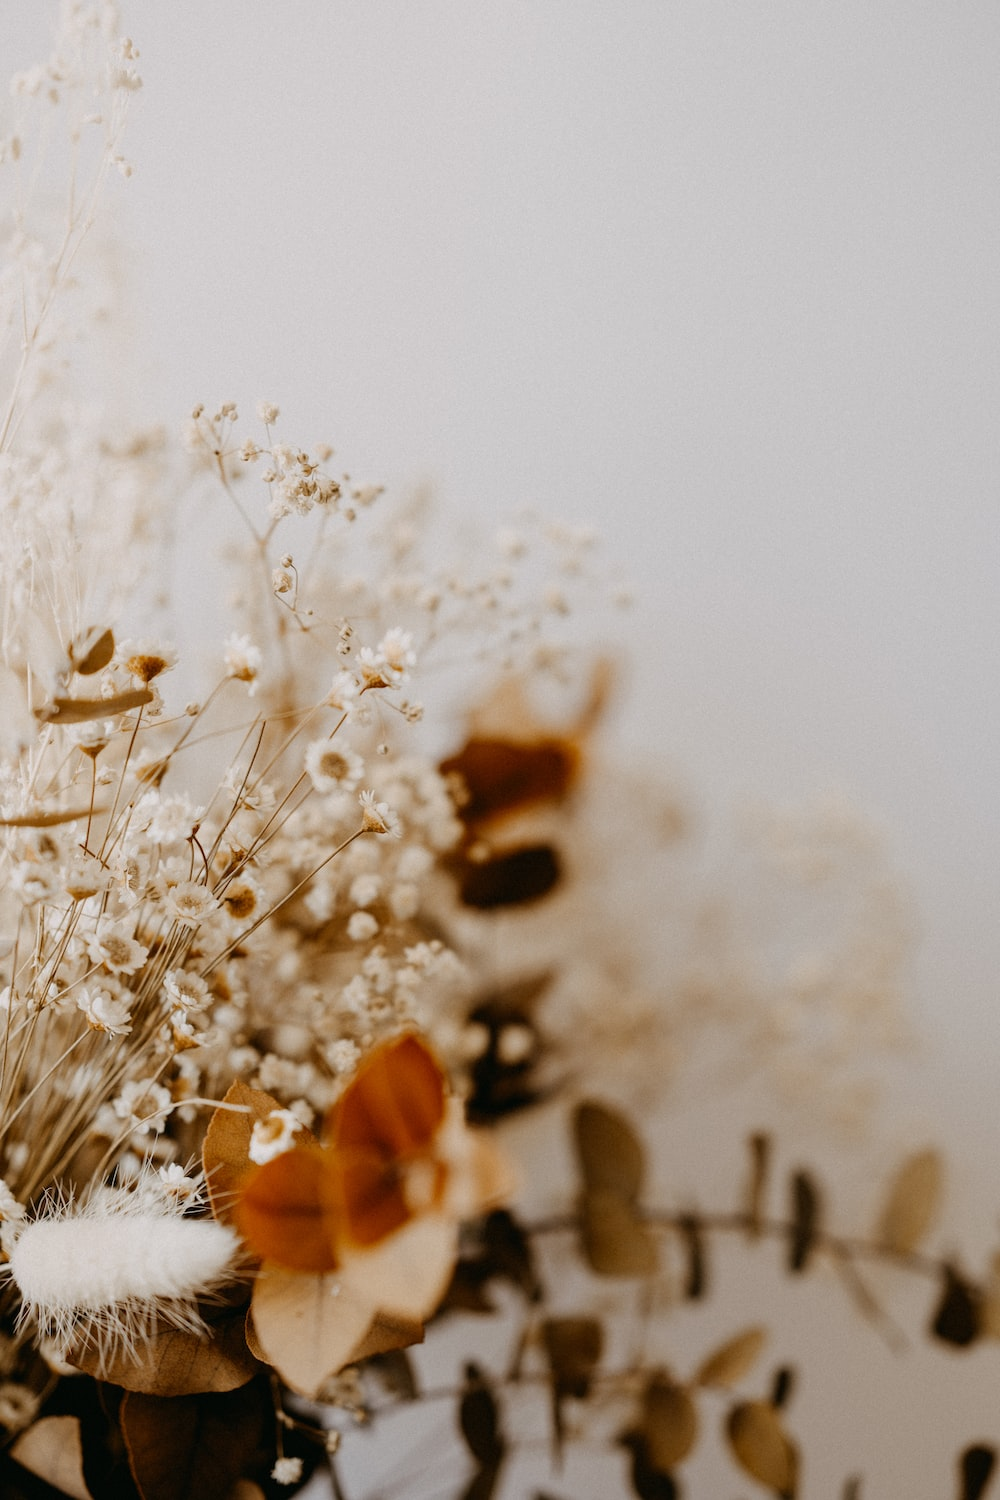 white flower buds in close up photography